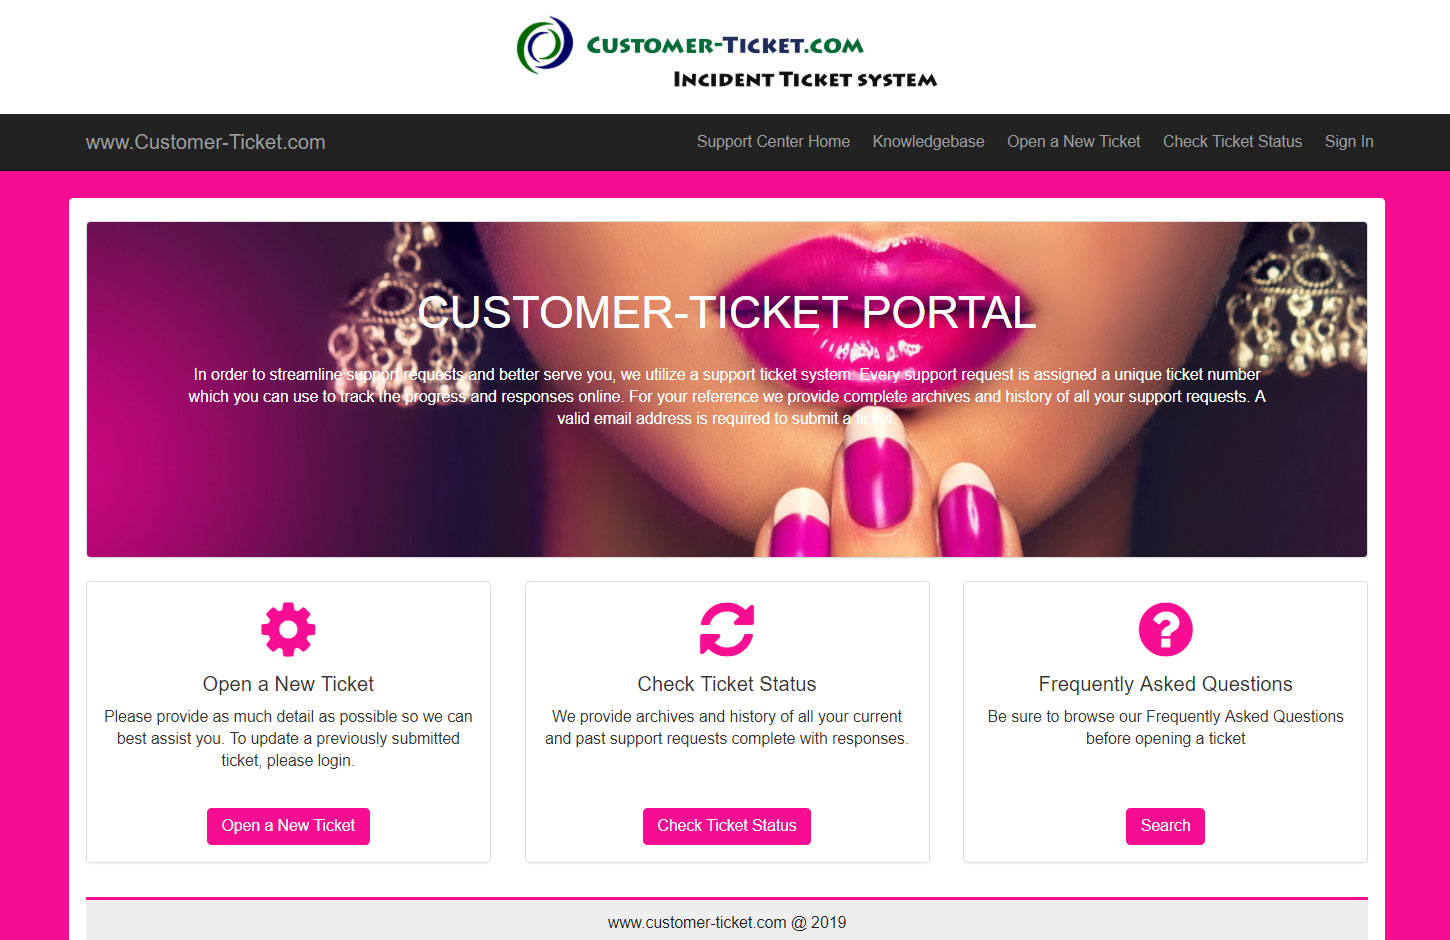 helpdesk color theme pink RGB code f70d92 for beauty business